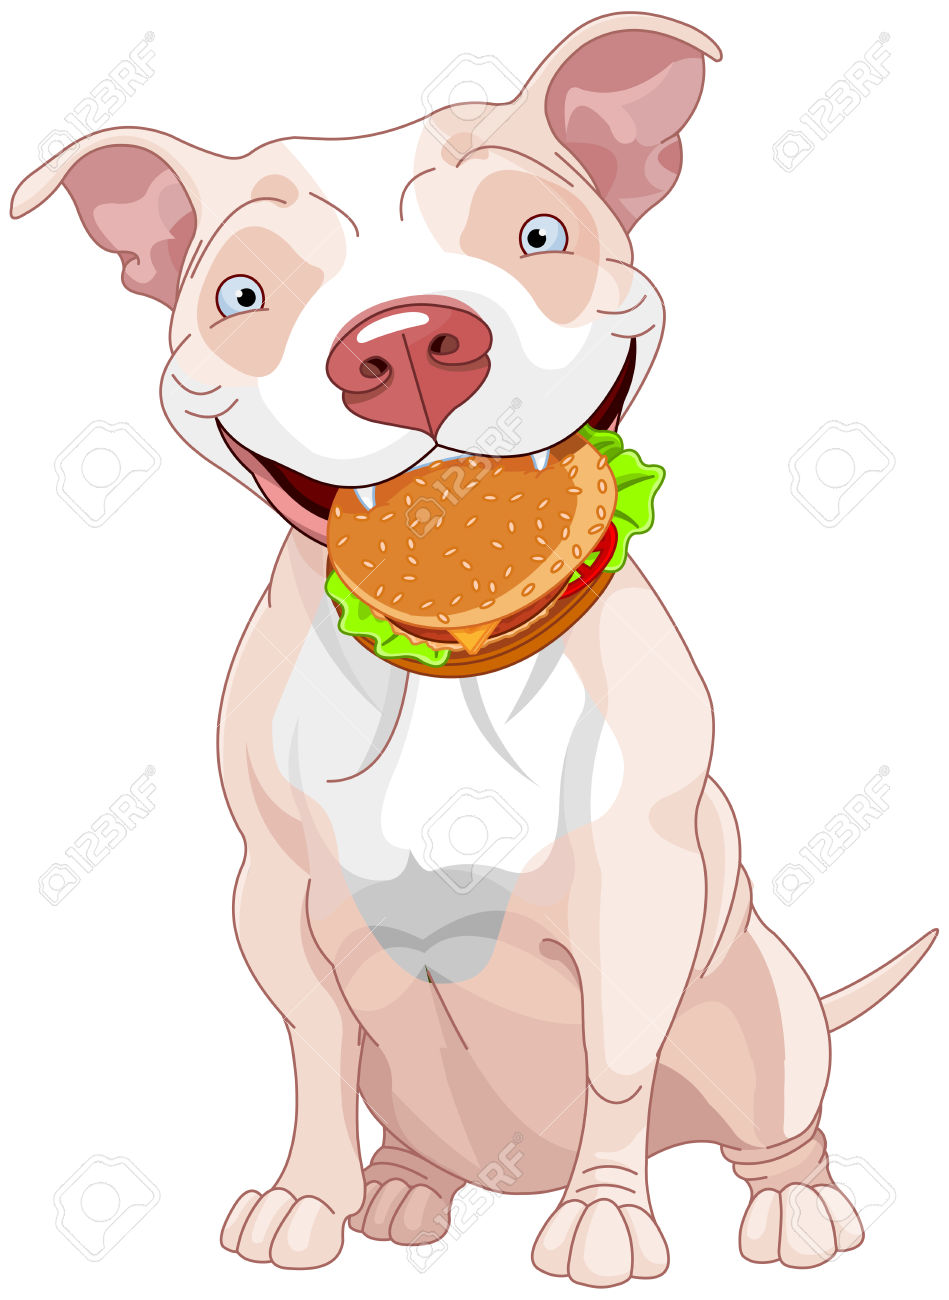 Pit Bull clipart #10, Download drawings